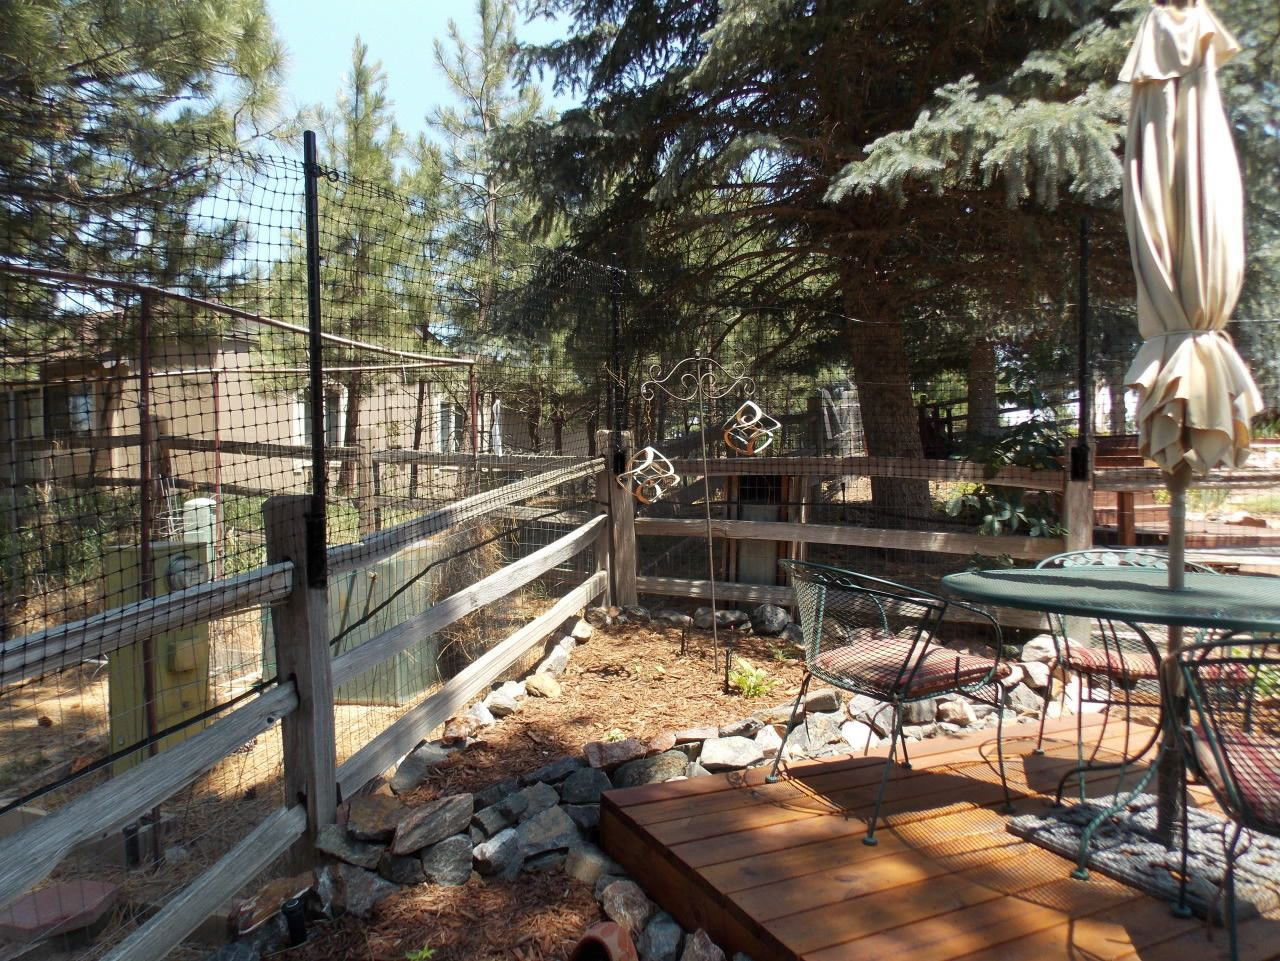 Fence extension kits for already existing fences in 2020